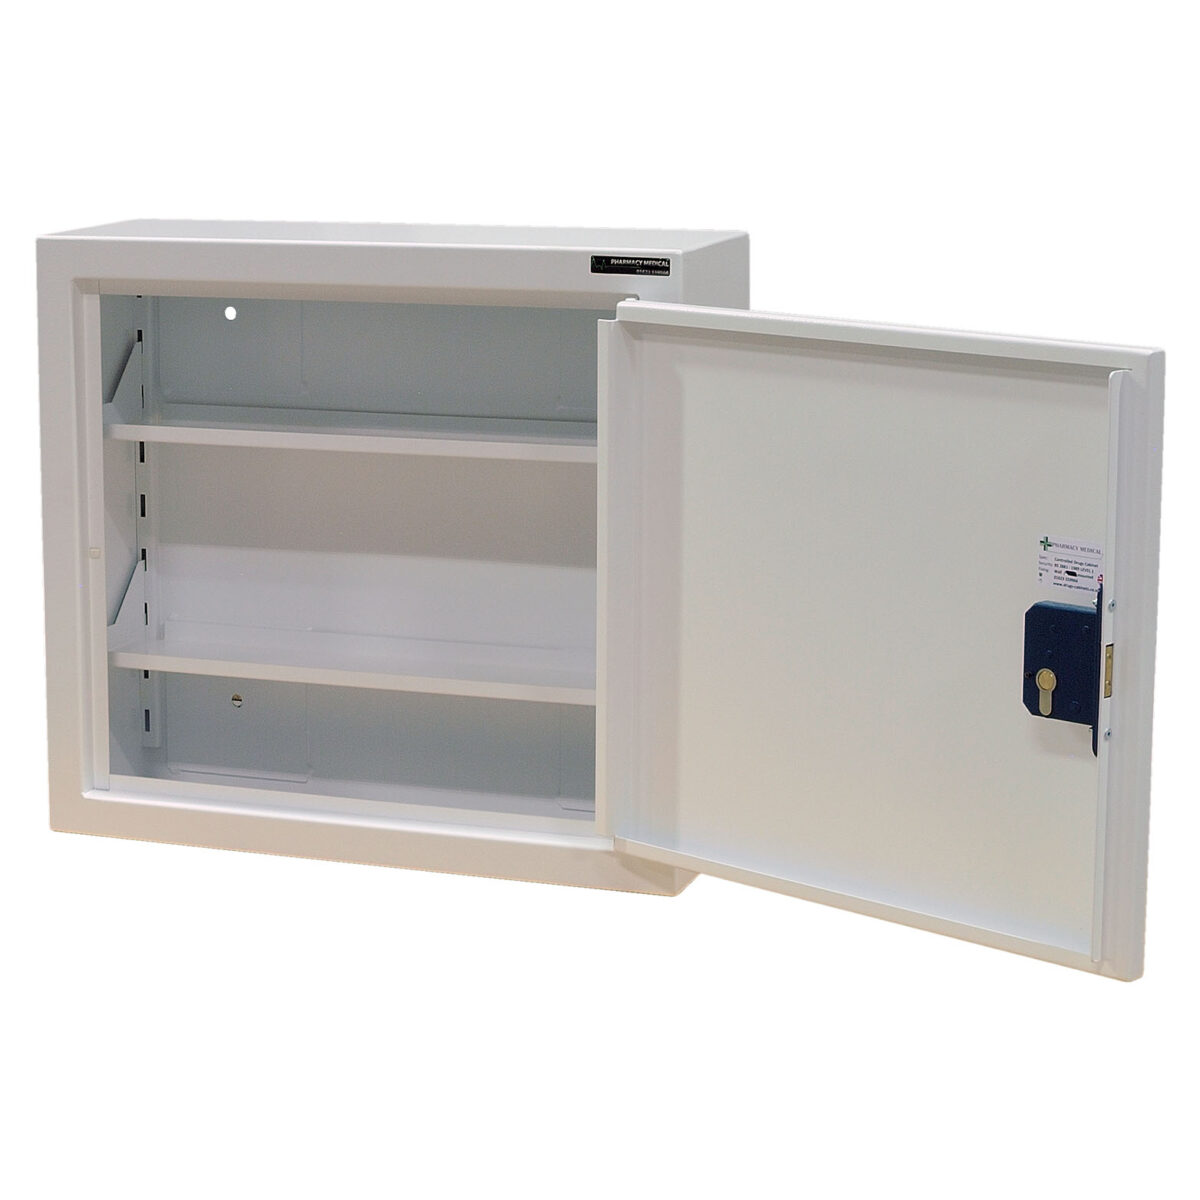 HECDC101S Controlled drugs cabinet